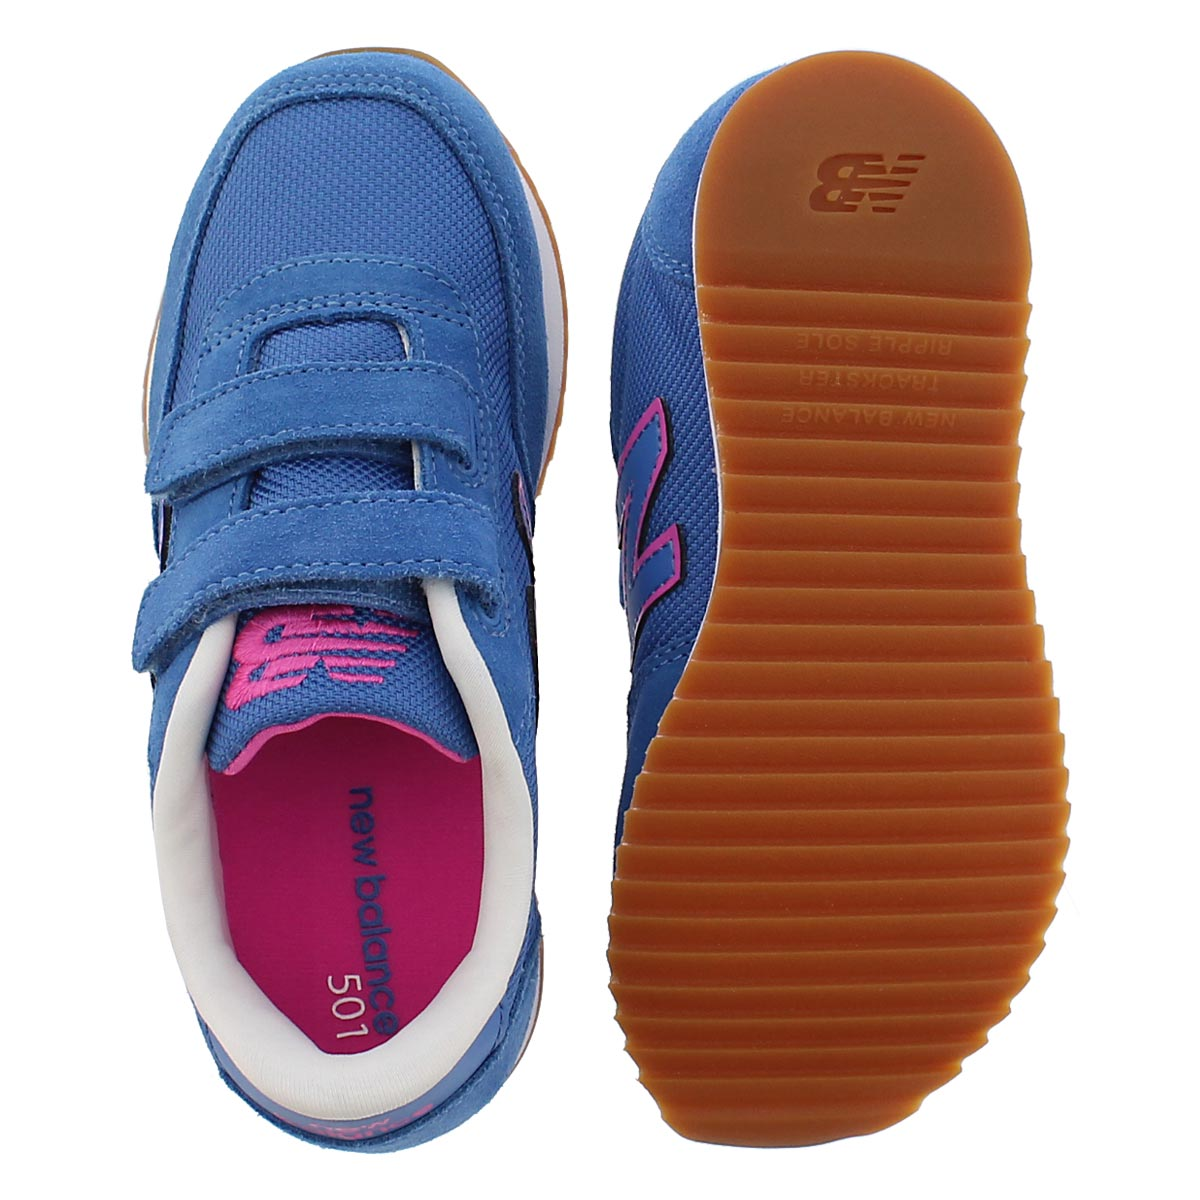 Grls 501 blue/pink two strap sneaker